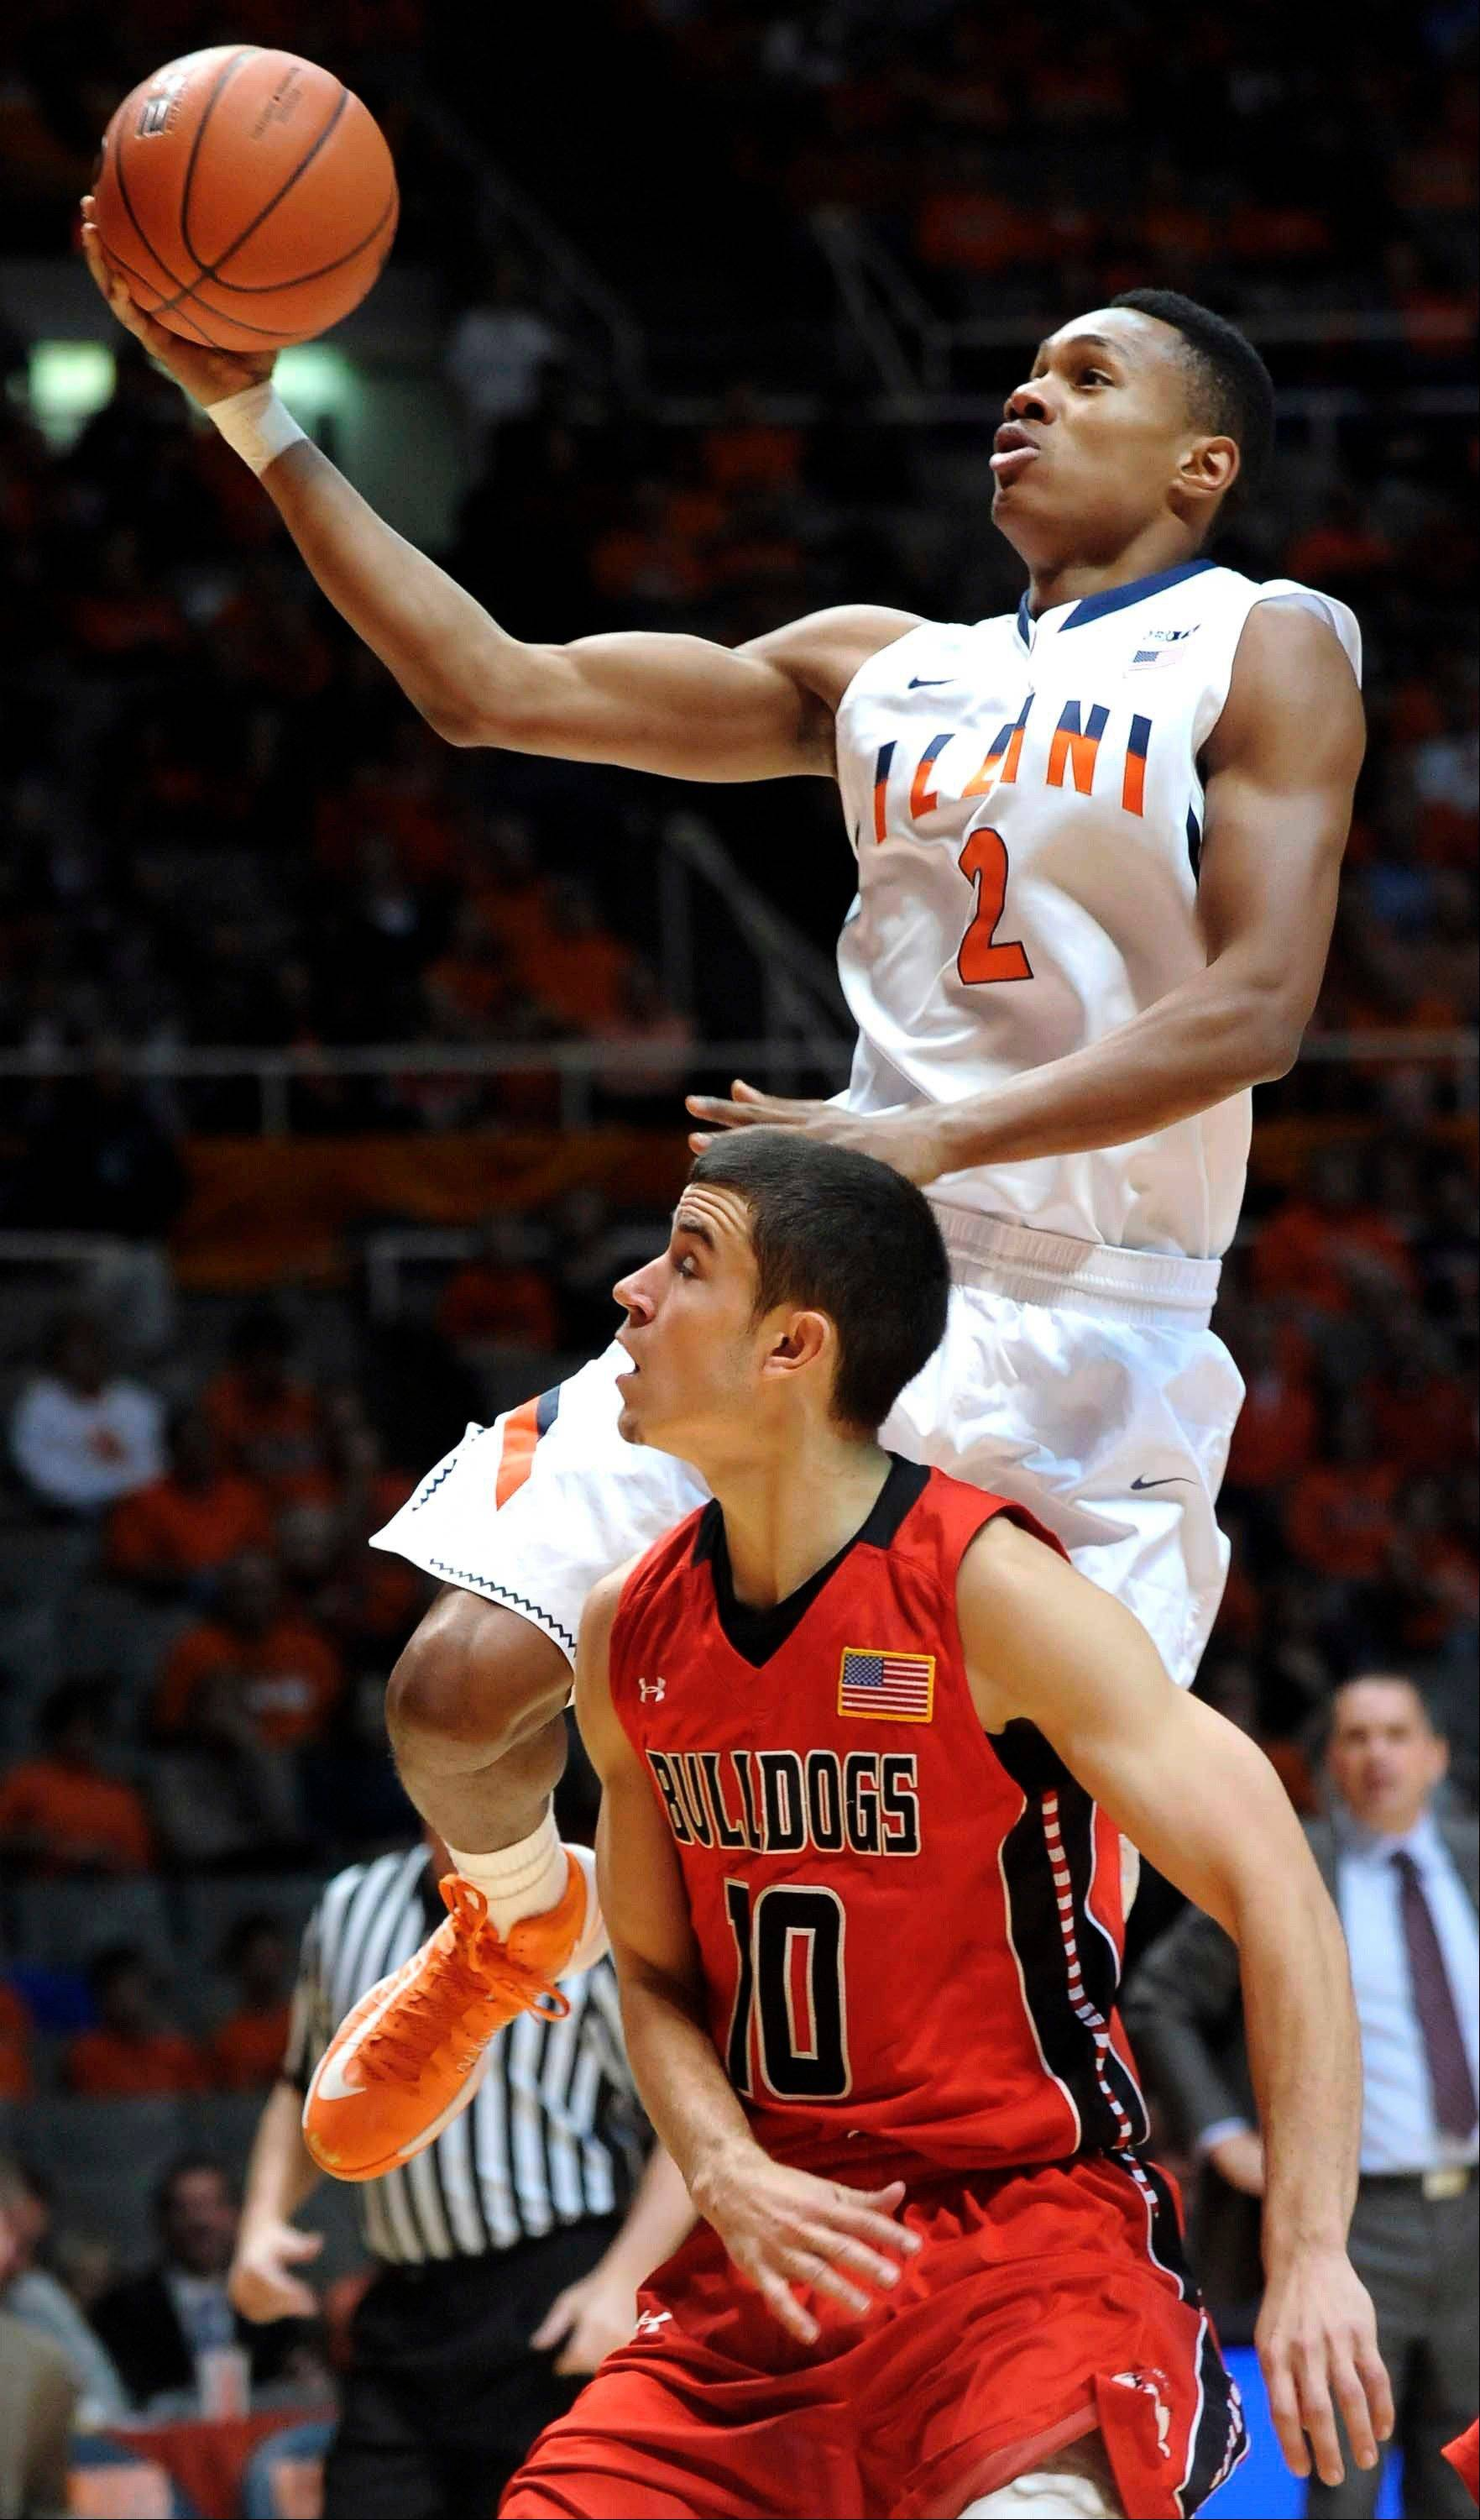 Illinois guard Joseph Bertrand shoots over Gardner-Webb guard Max Landis in the first half of their game Sunday at Assembly Hall in Champaign.